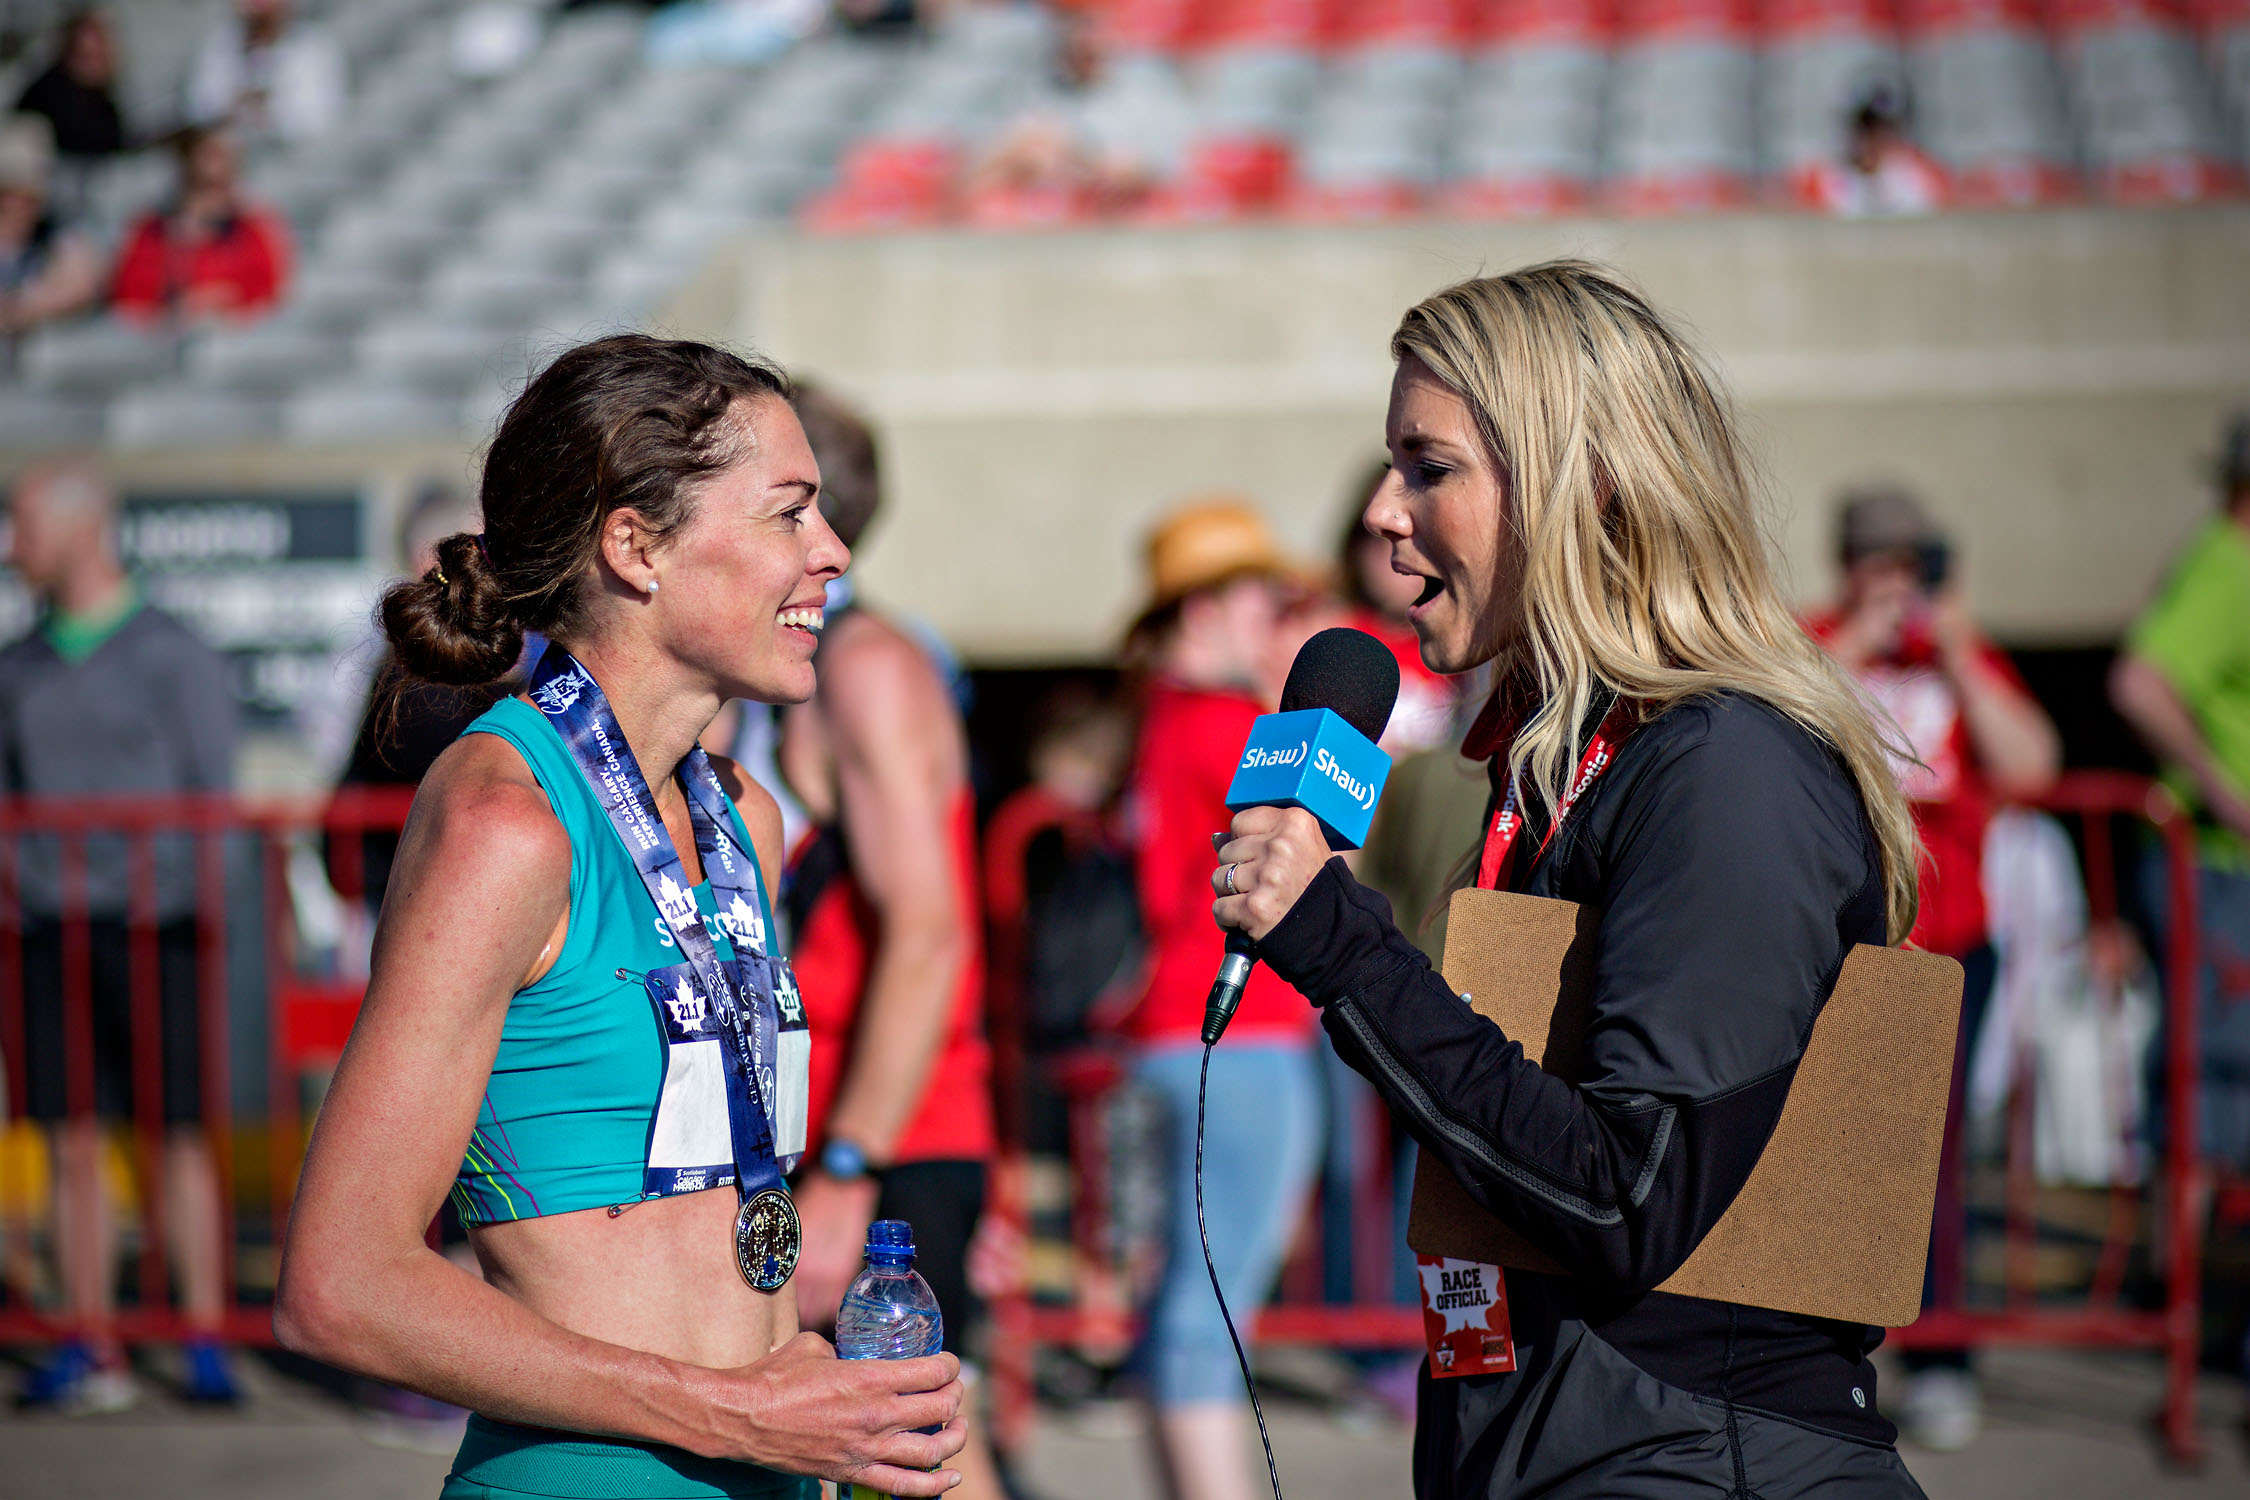 Emily talking to a Shaw Reporter after the 2017 Calgary Half Marathon (Canadian Half Marathon Championships).  Photo by: Jody Bailey (@run_photographs, jodybailey.ca)